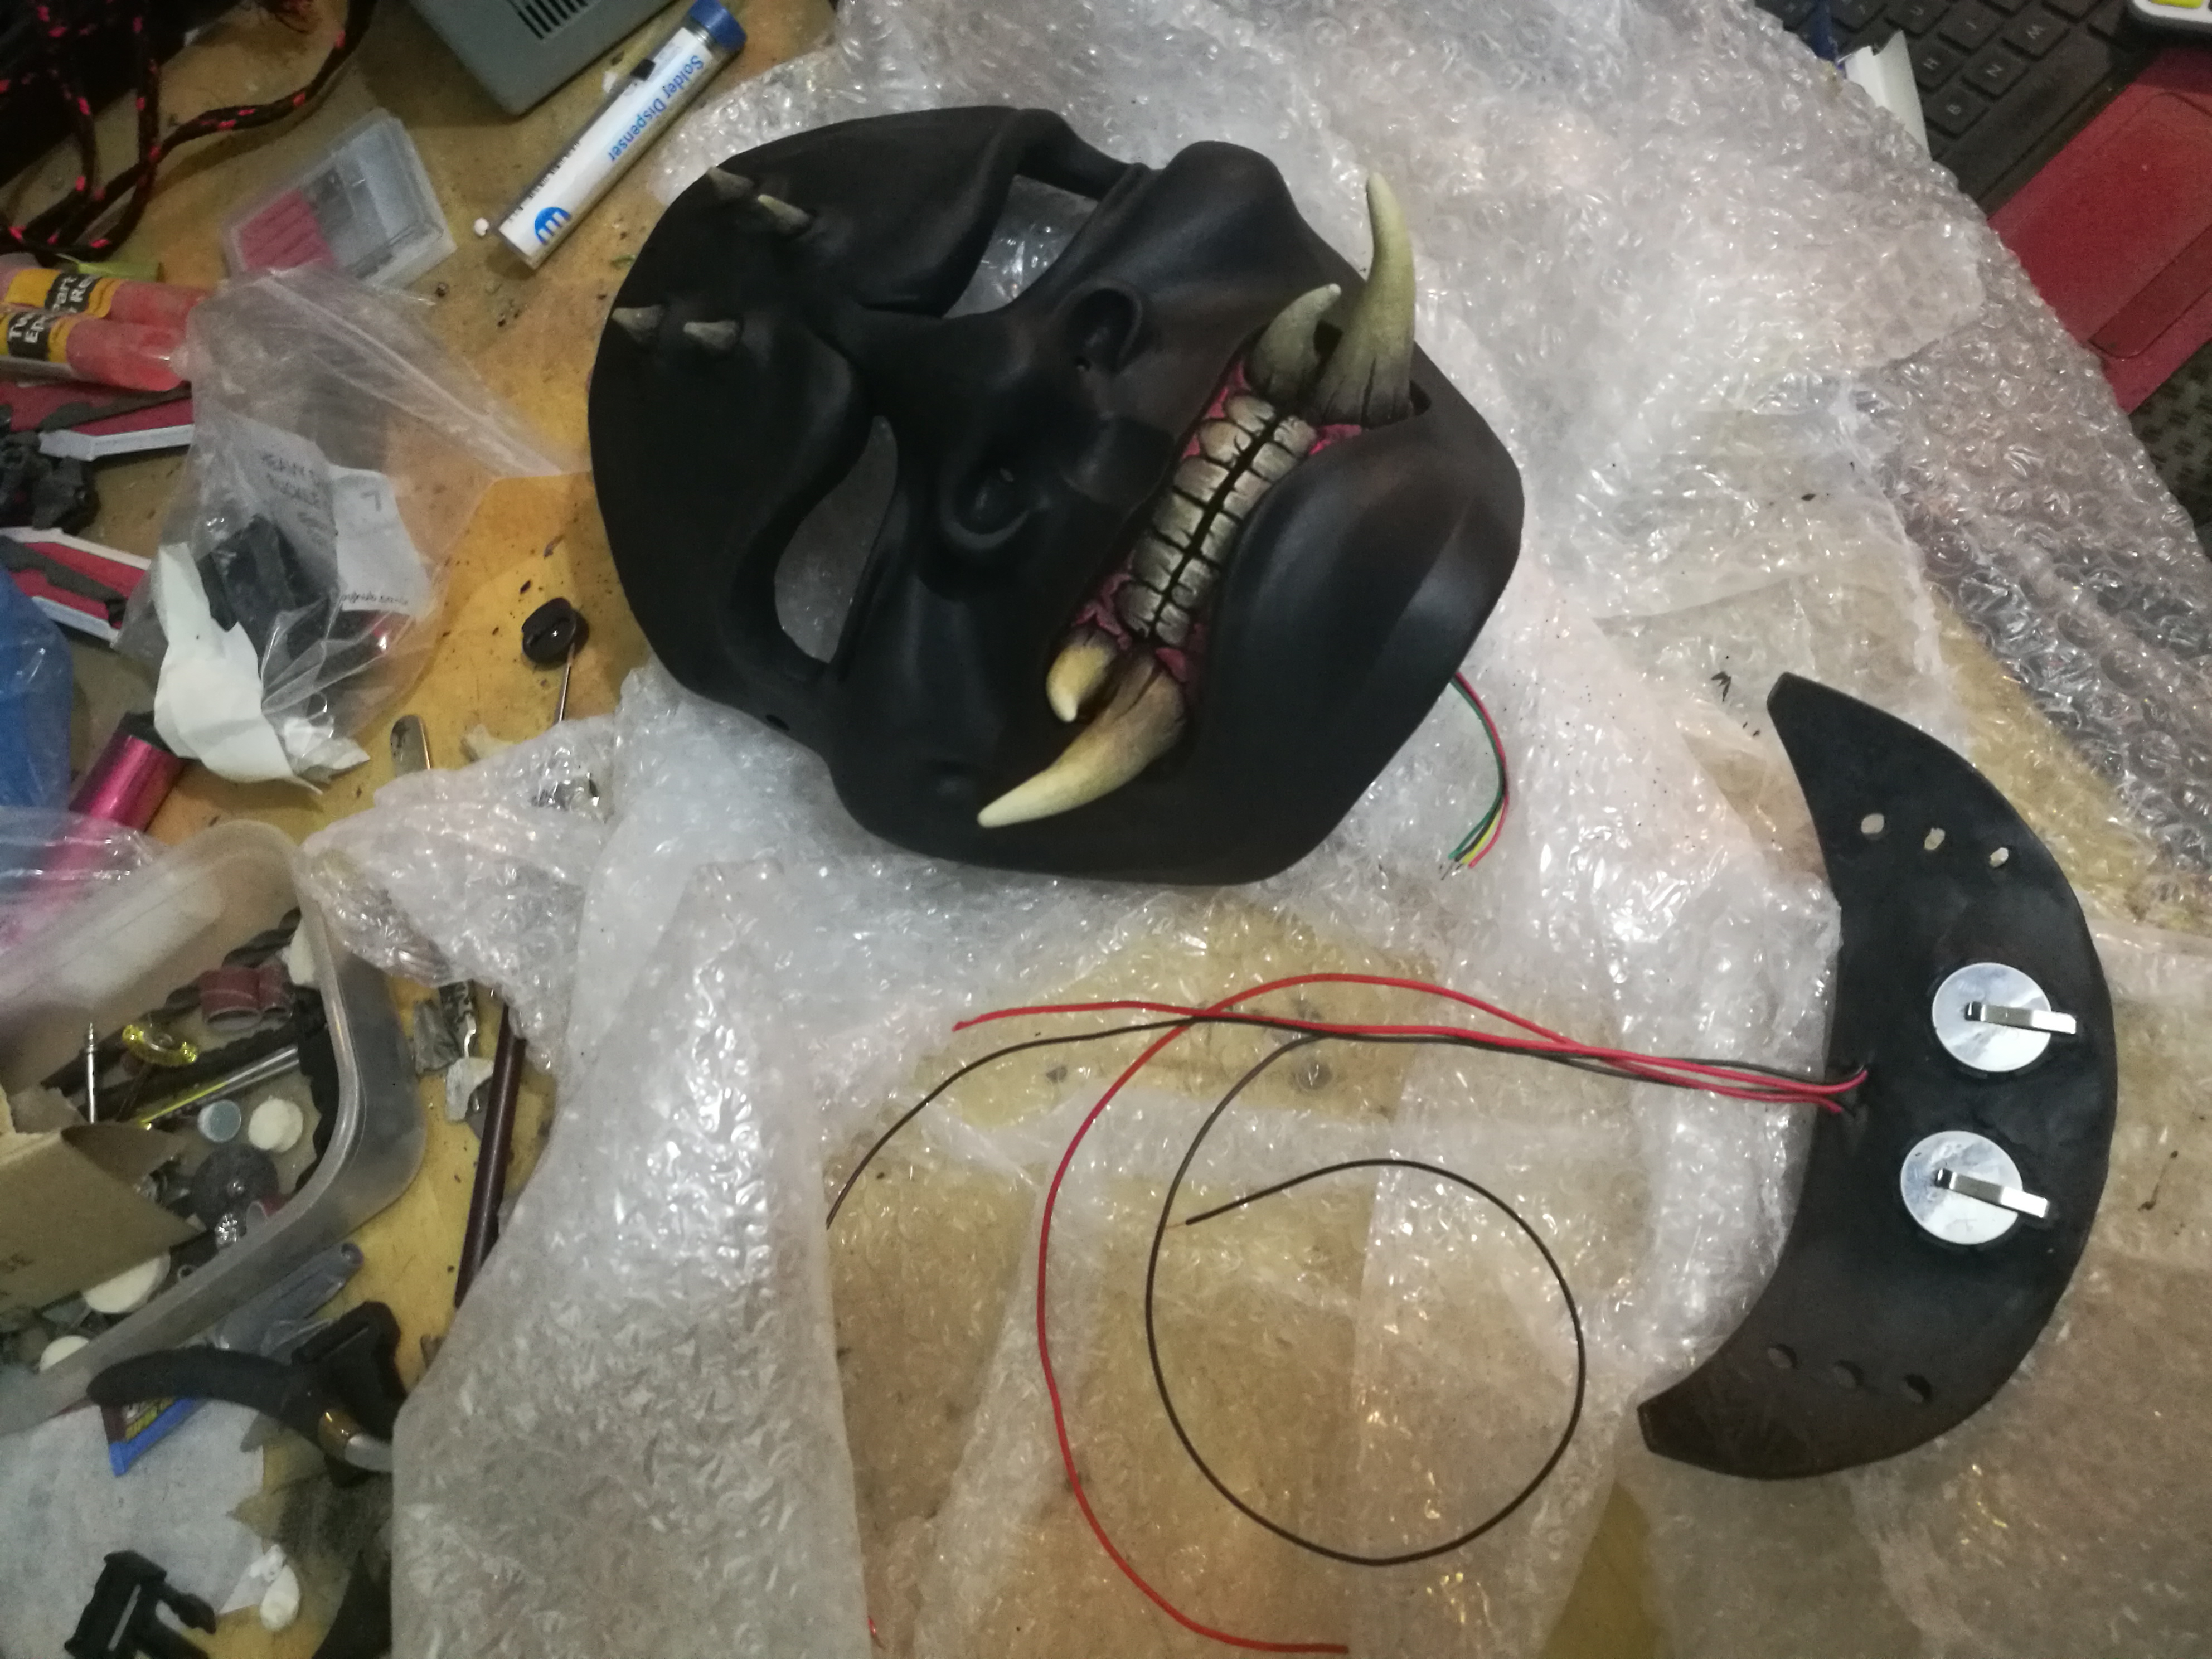 Void One - Neck Armour Battery Install